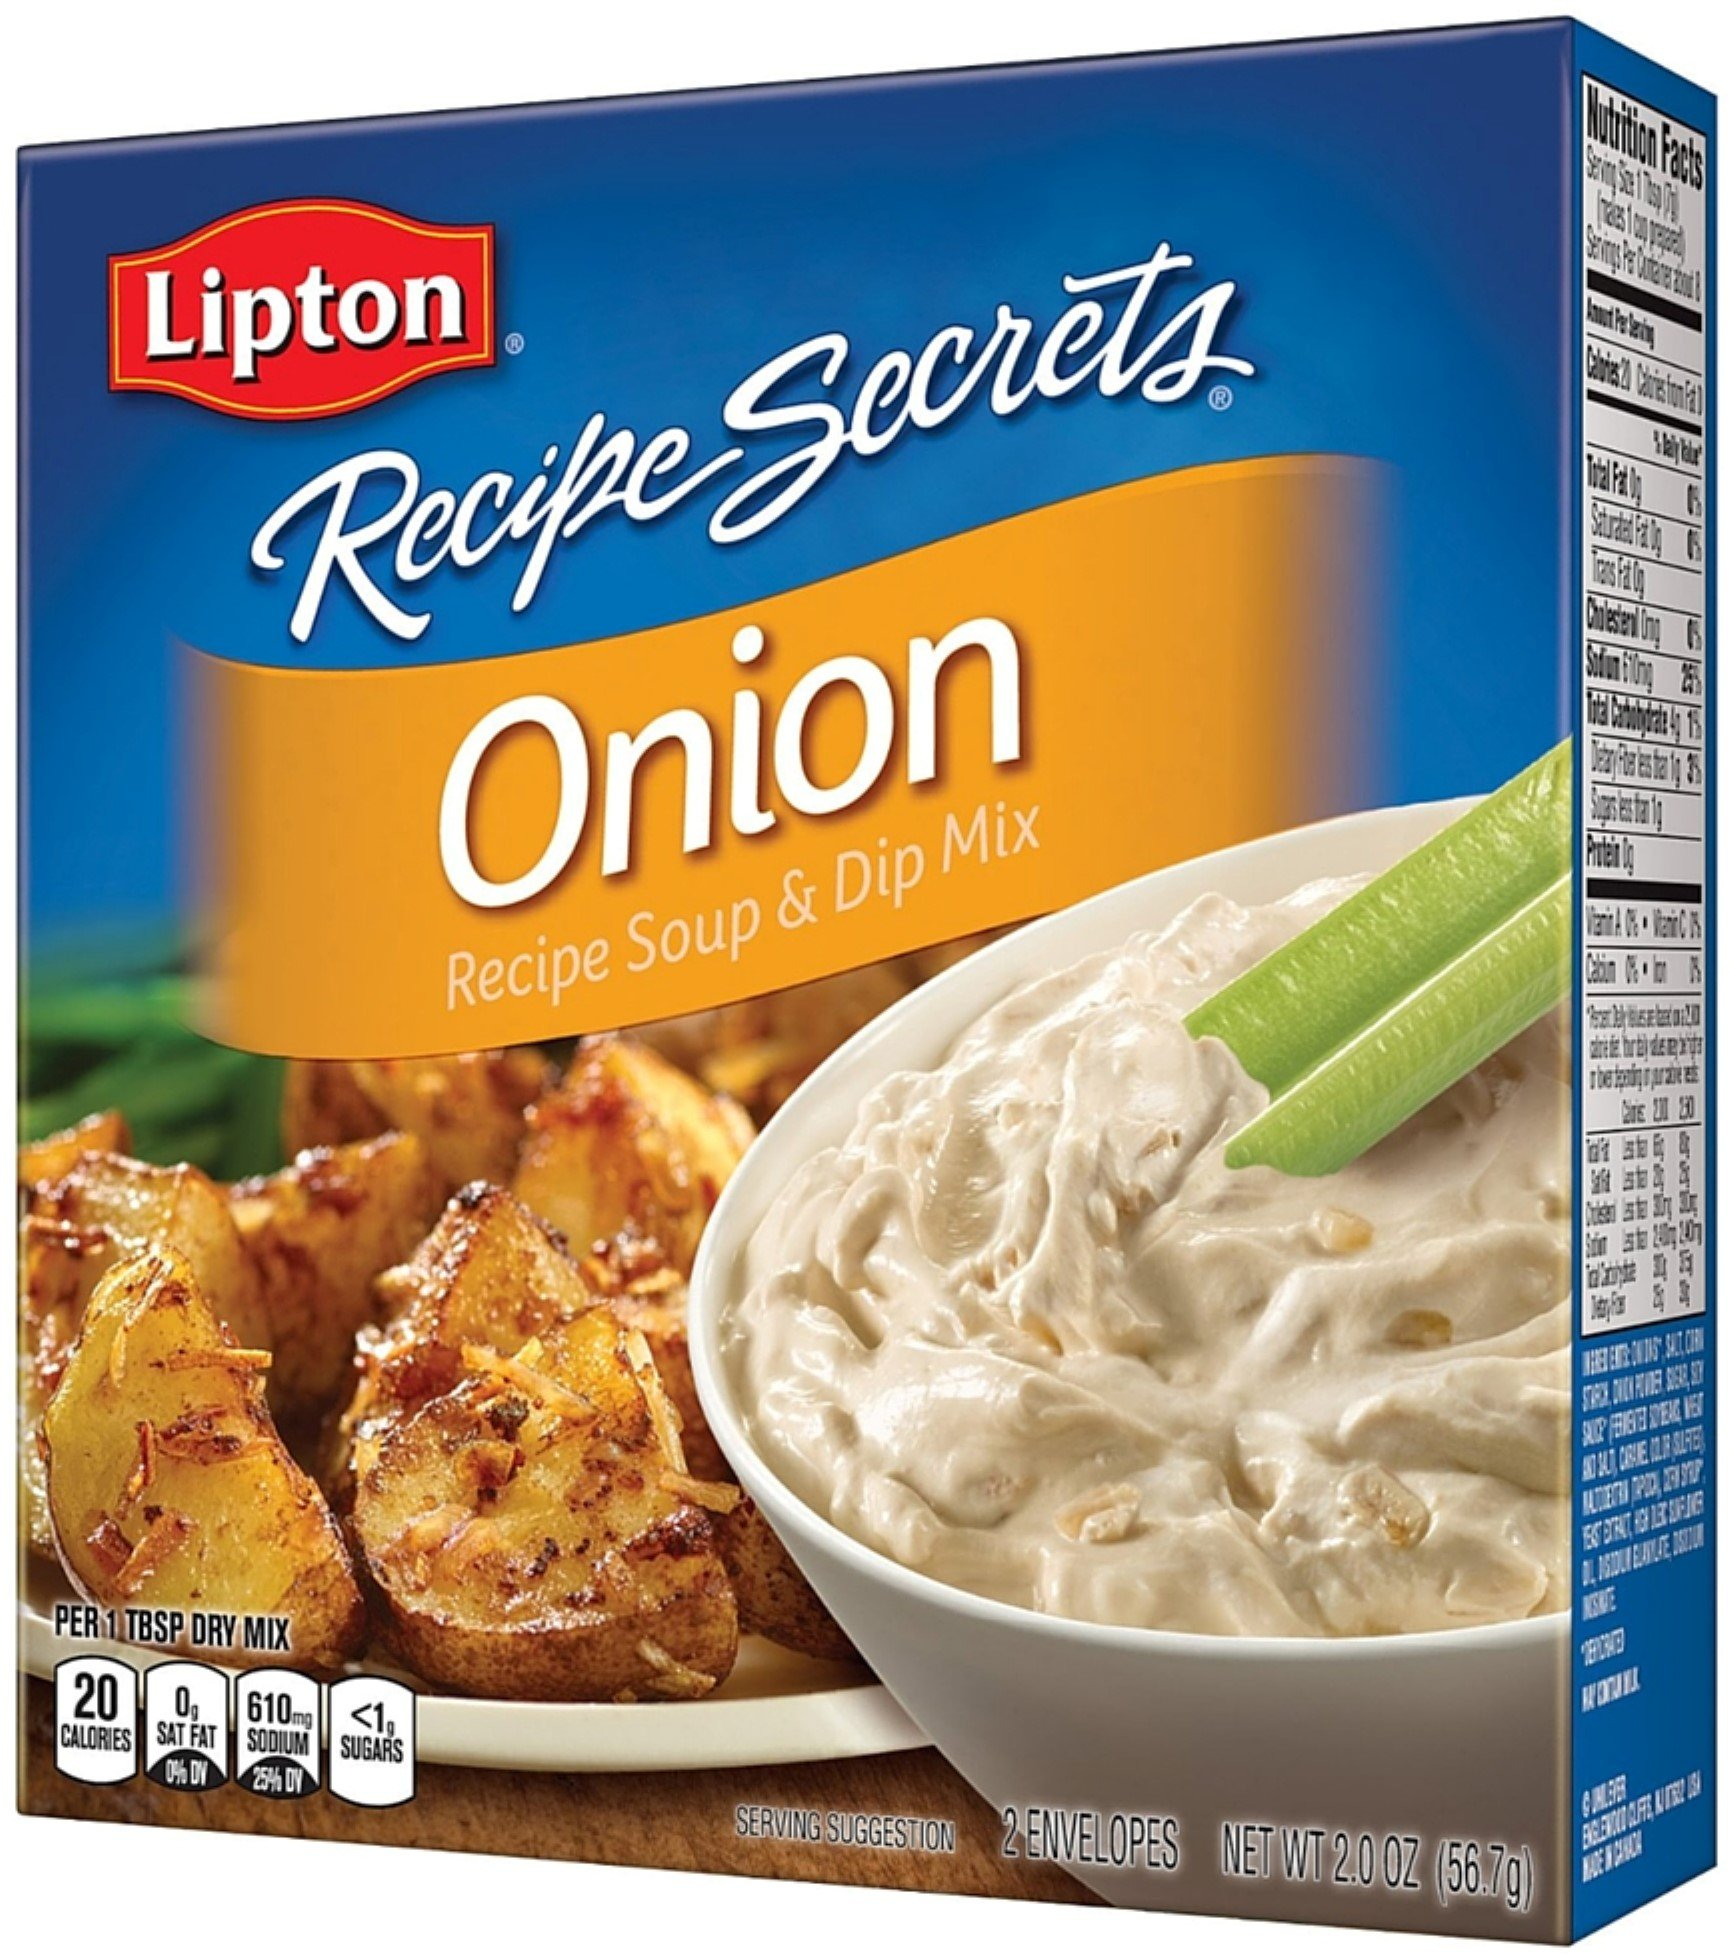 Lipton Recipe Secrets Onion Soup and Dip Mix 2 ea (9 Pack) by Lipton